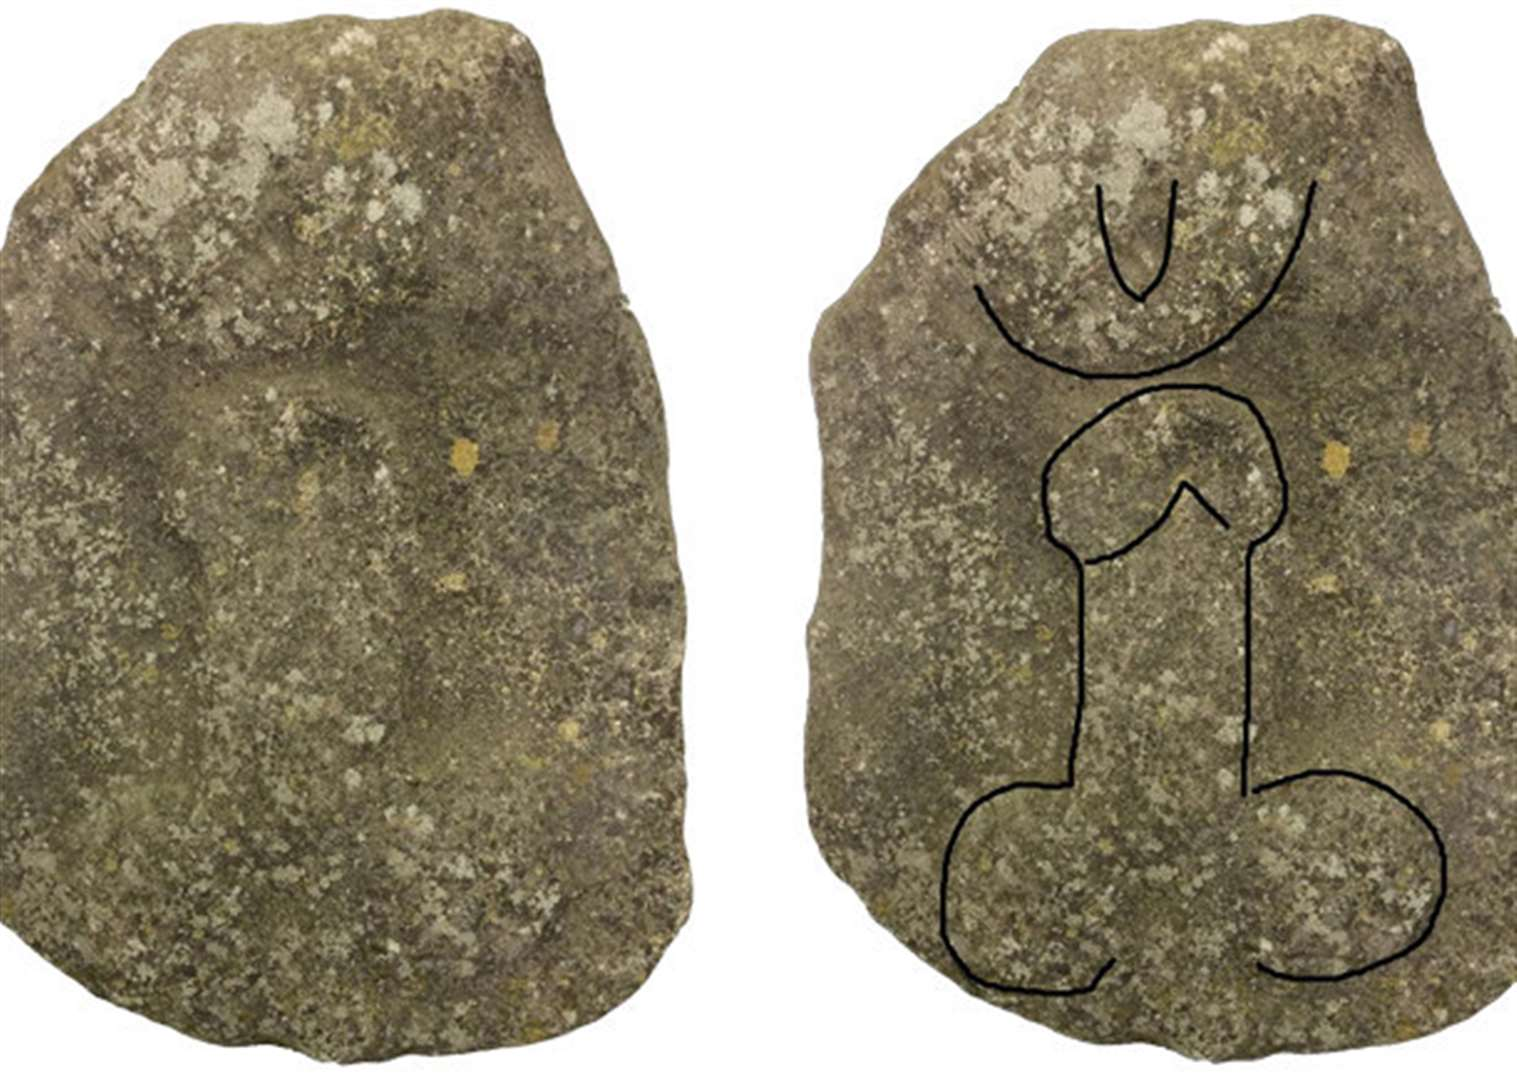 Roman carving of a phallus, found in village between Grantham and Sleaford, to go on display